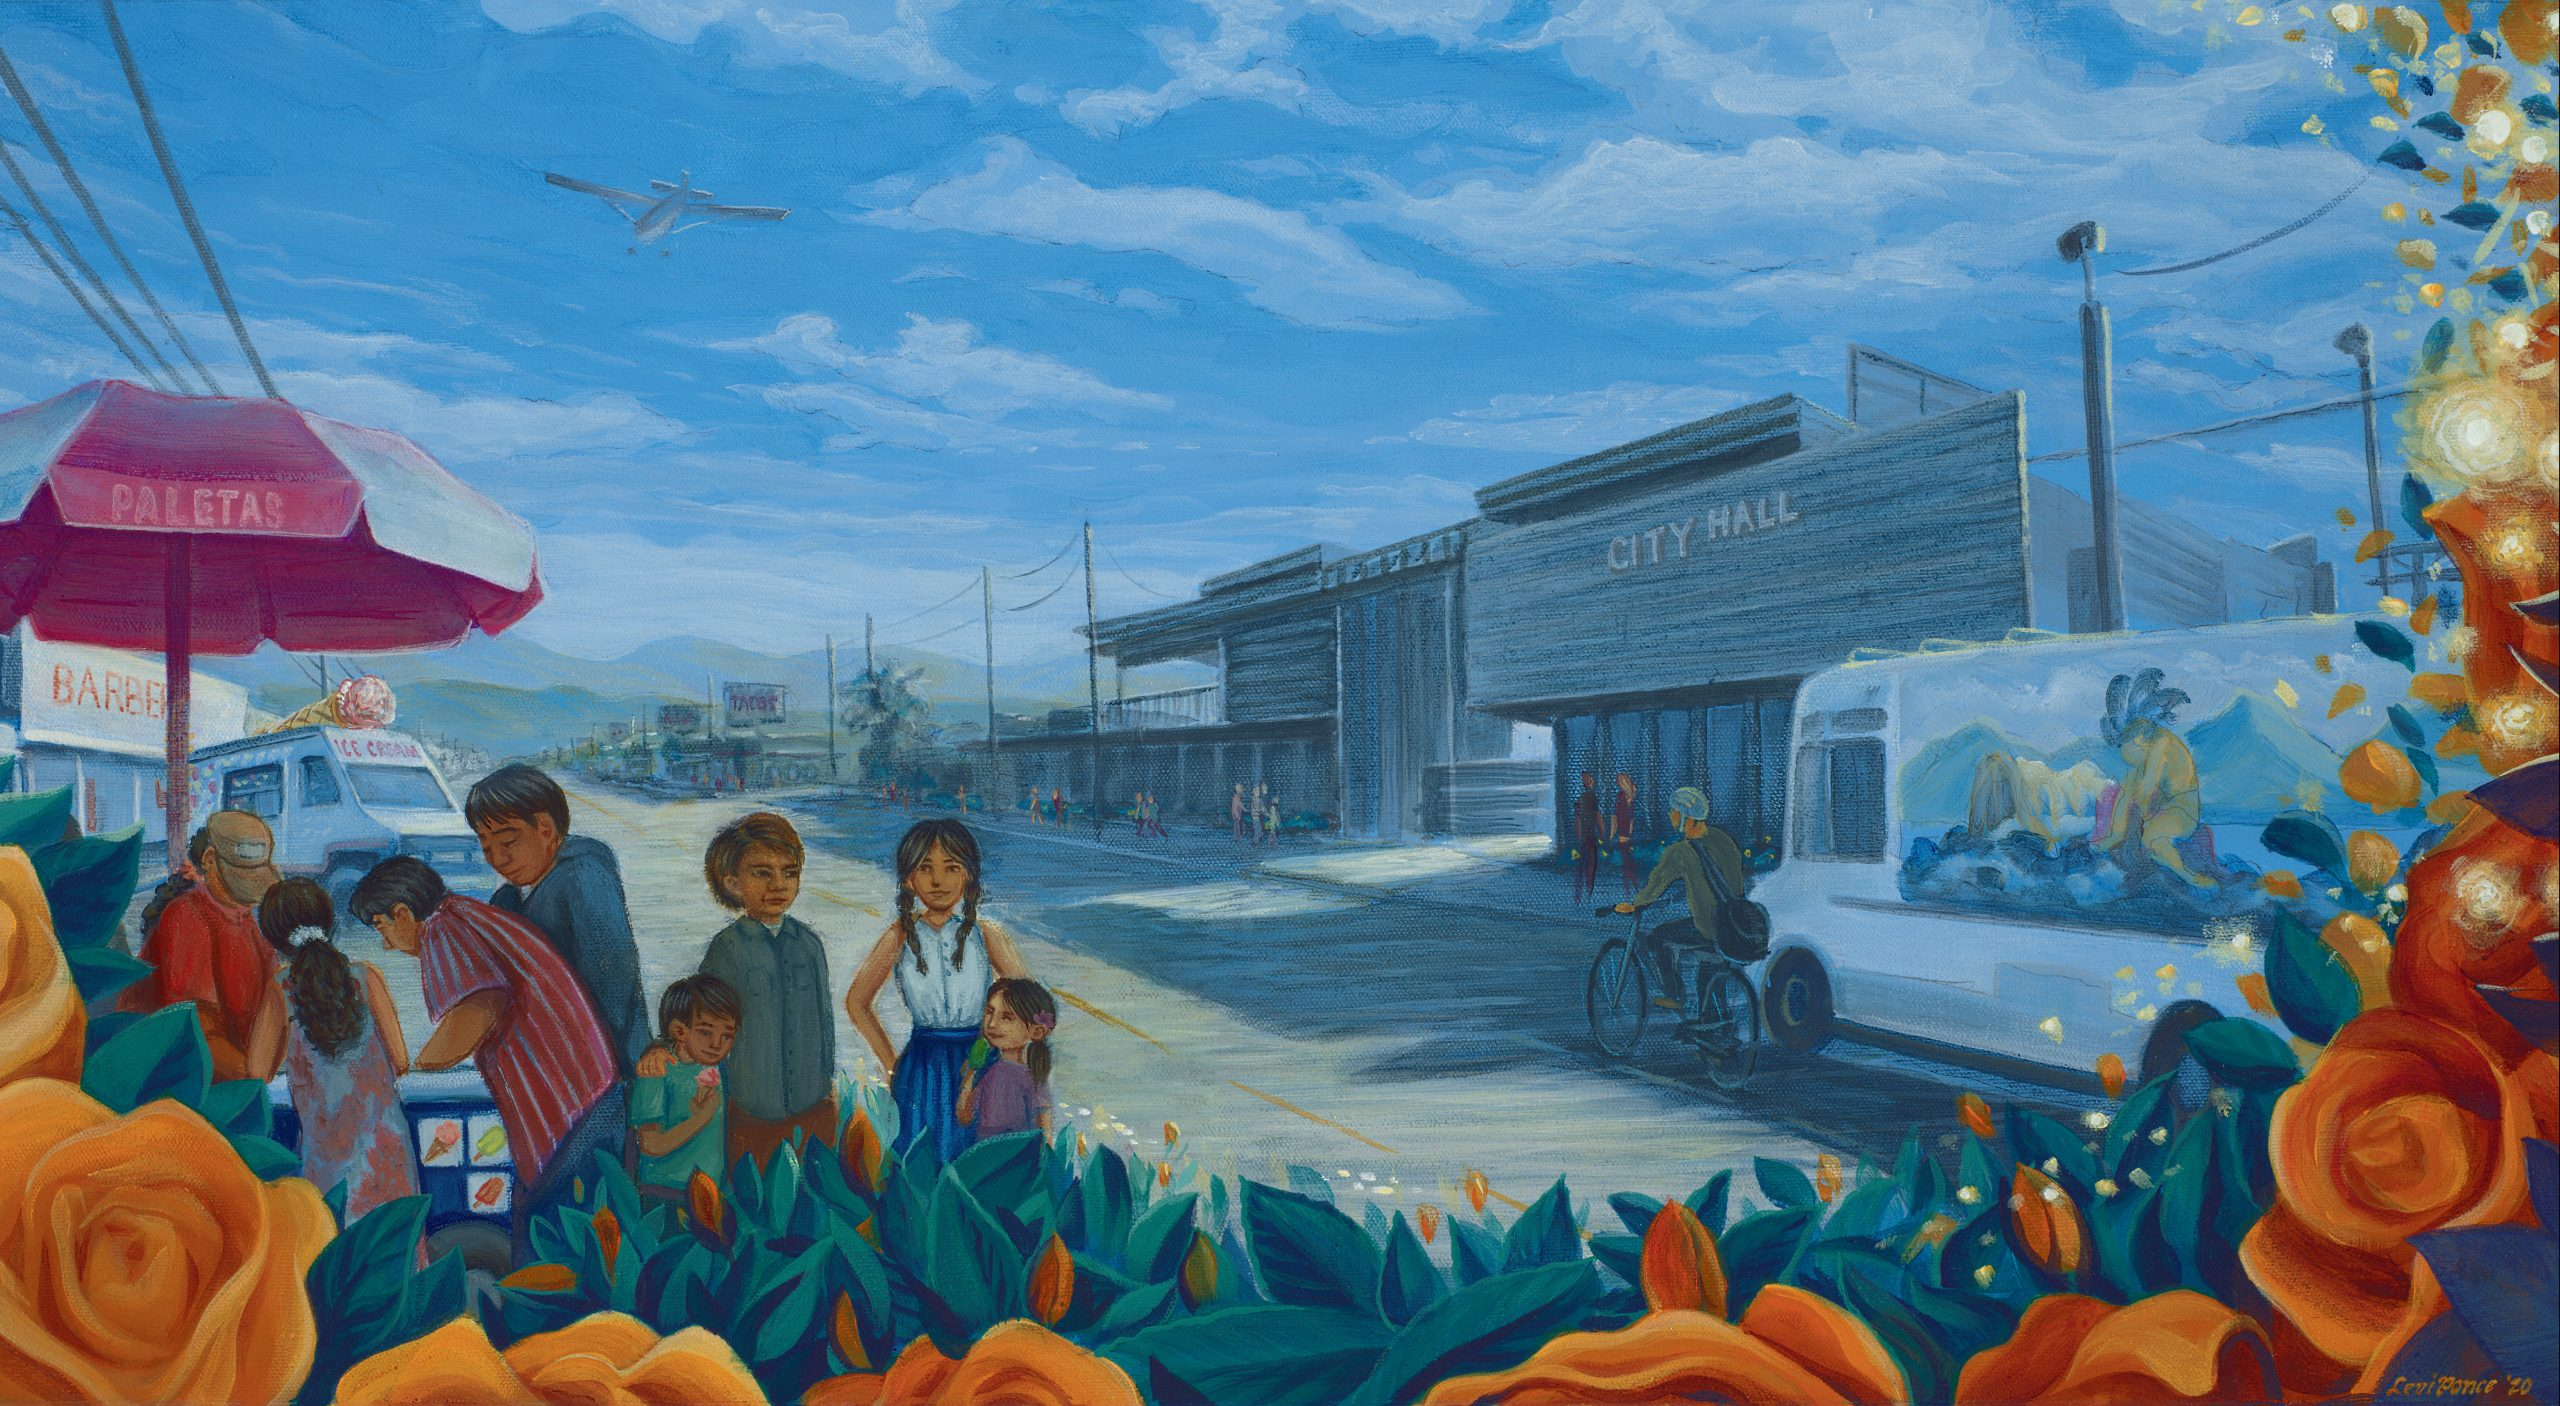 Pacoima Through the Eyes of Artist Levi Ponce